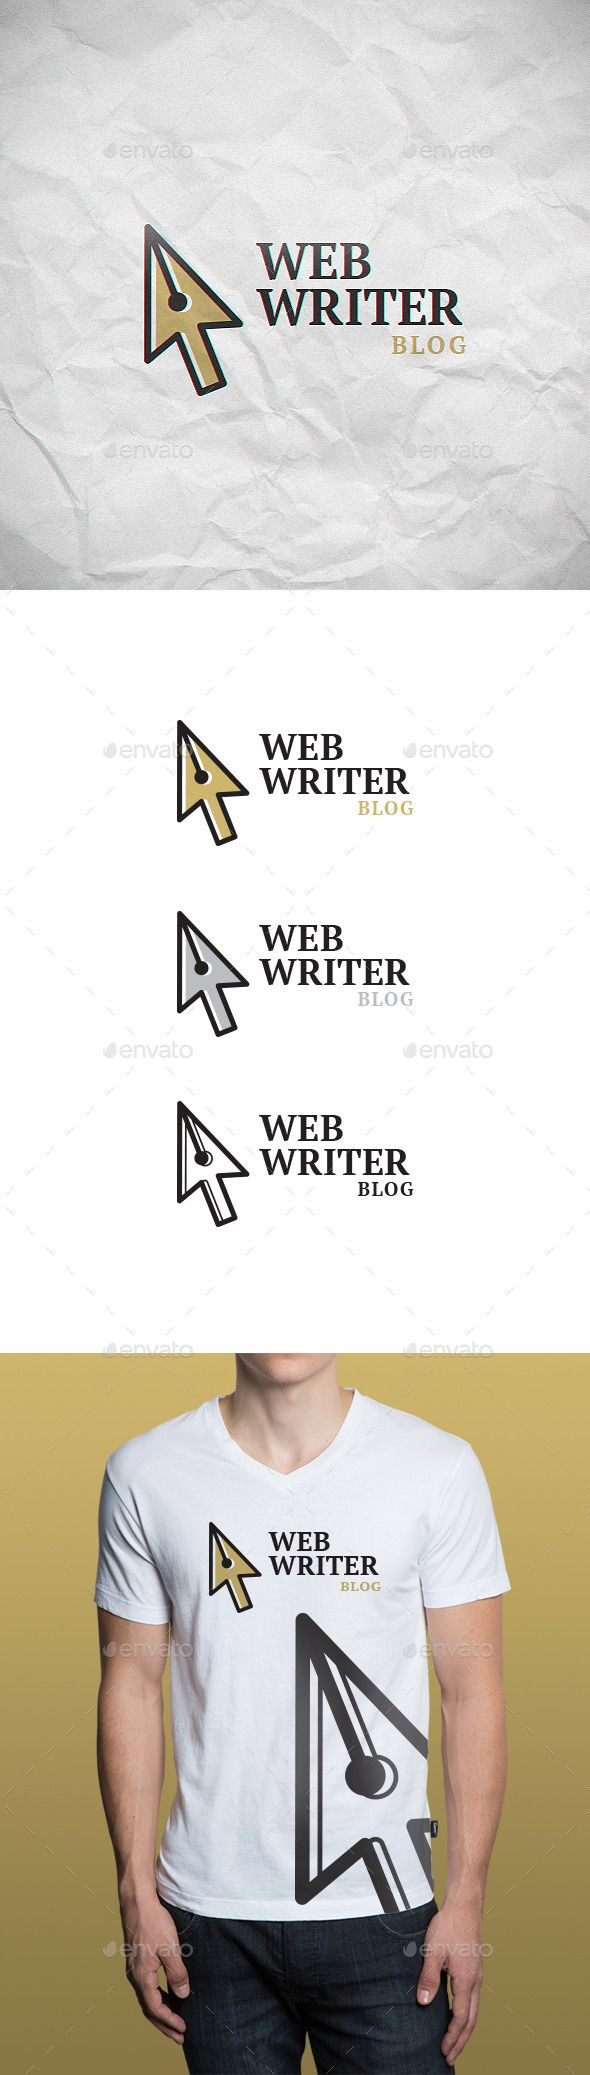 Web Writer  - Logo Design Template Vector #logotype Download it here: http://graphicriver.net/item/web-writer-logo-template/9287001?s_rank=968?ref=nesto